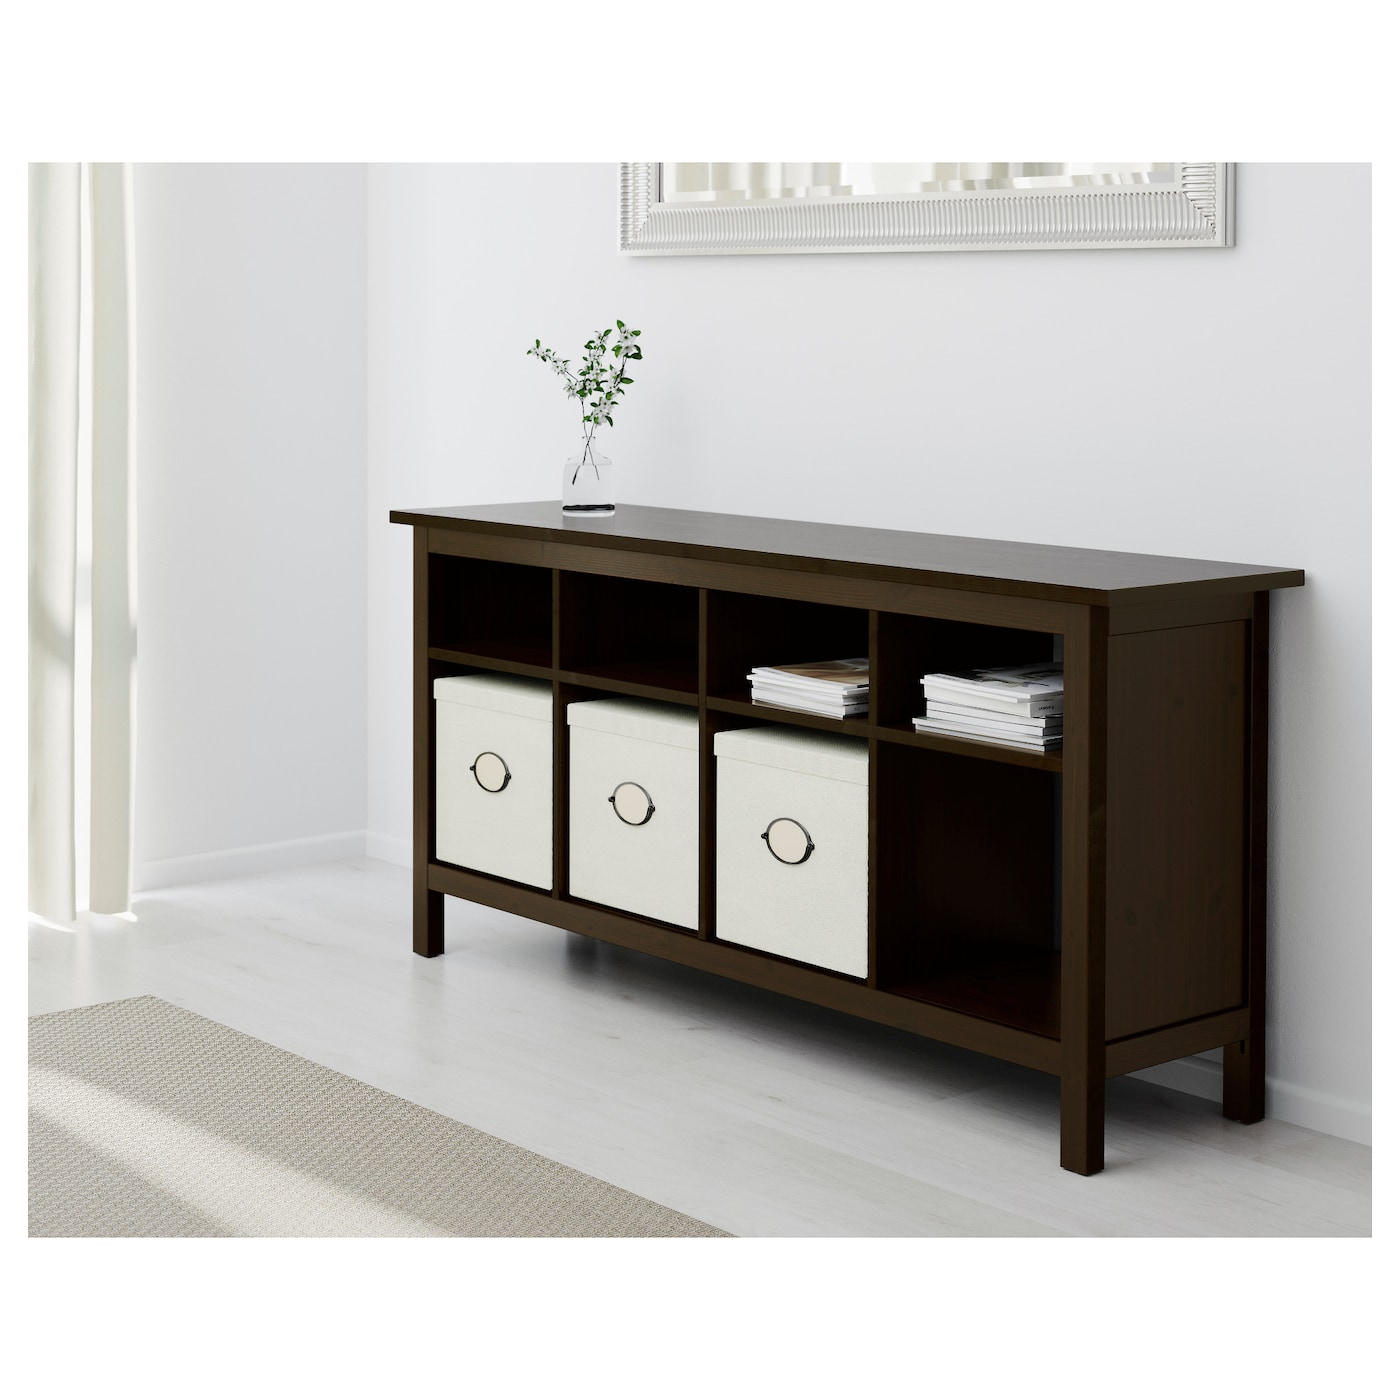 HEMNES Console table Black brown 157×40 cm IKEA